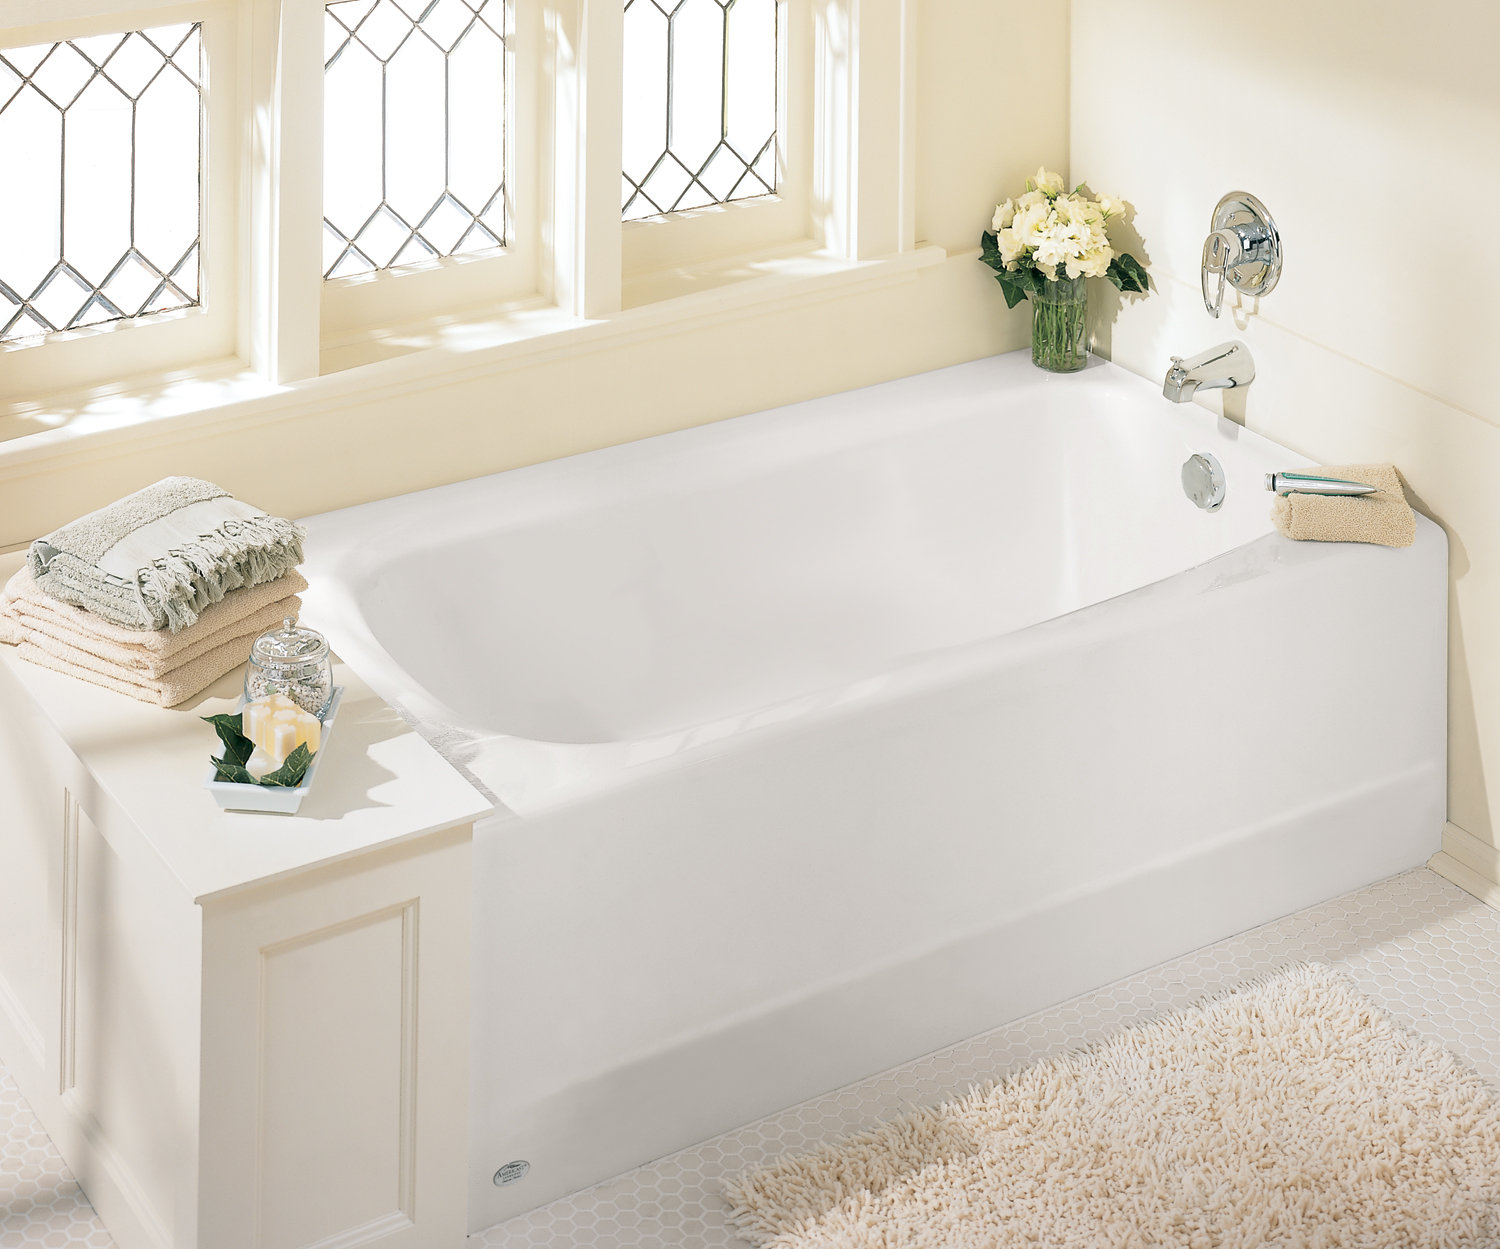 Bathtub buying guide tools home improvement for How big is a standard tub